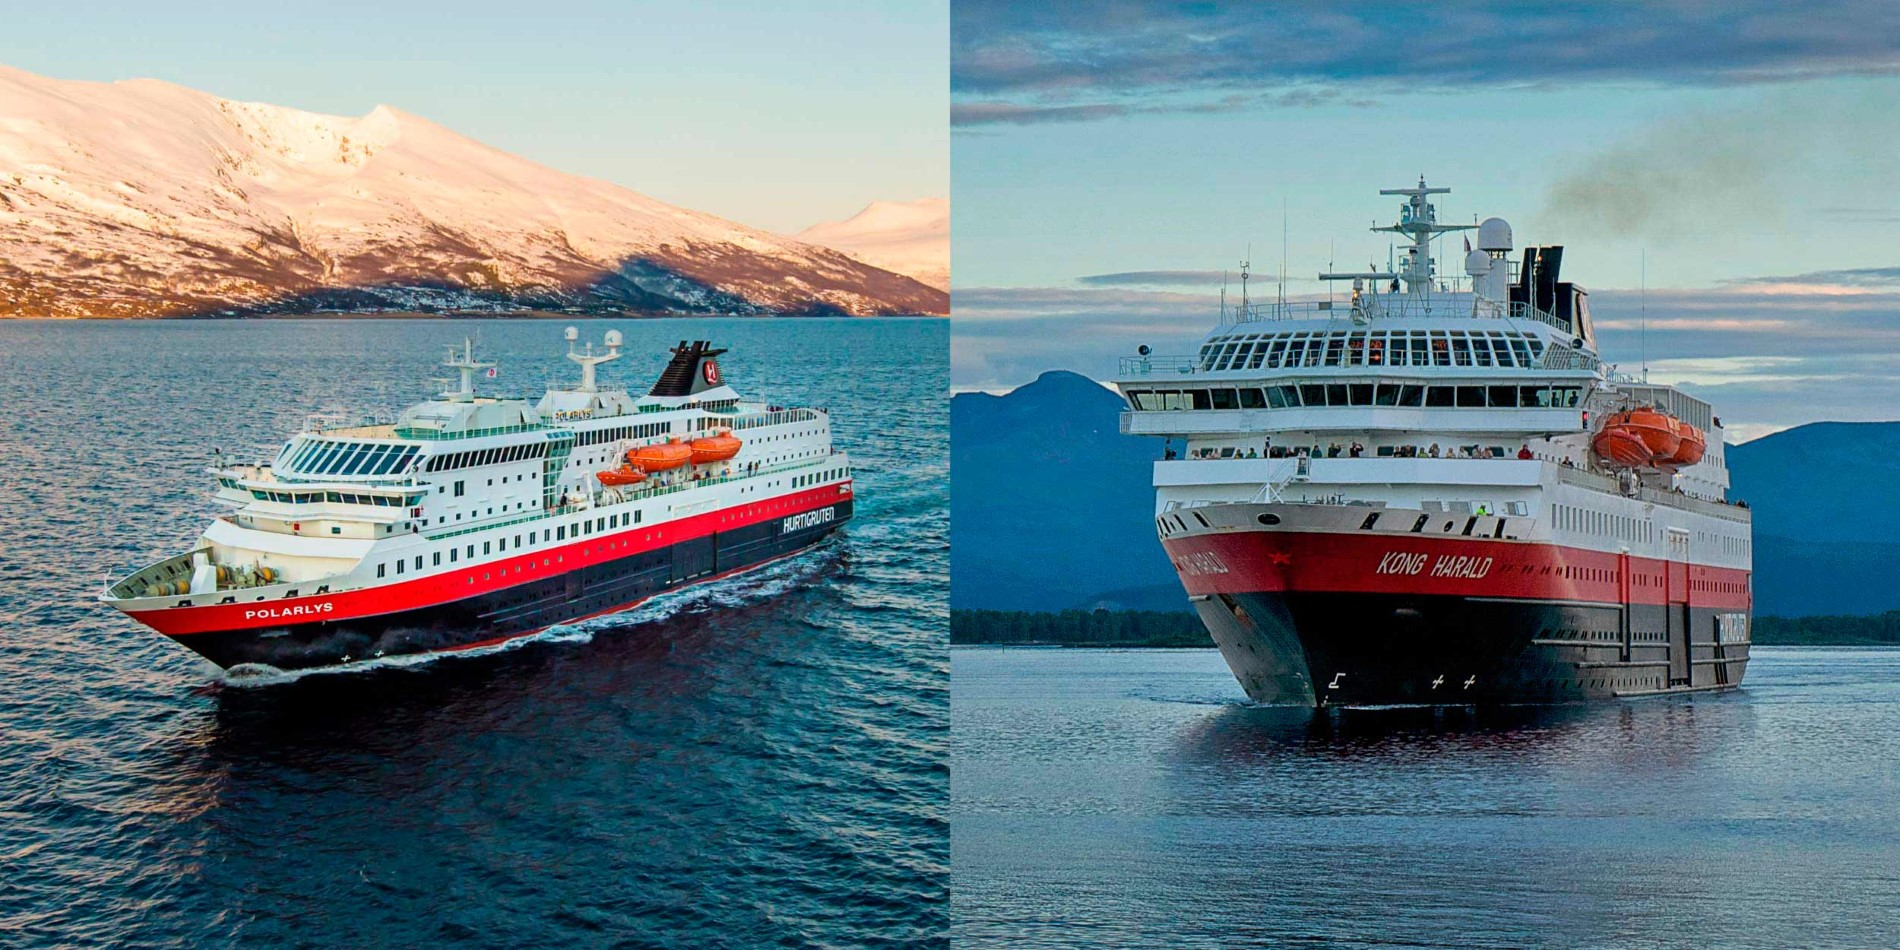 MS Polarlys and MS Kong Harald, our newly refurbished ships